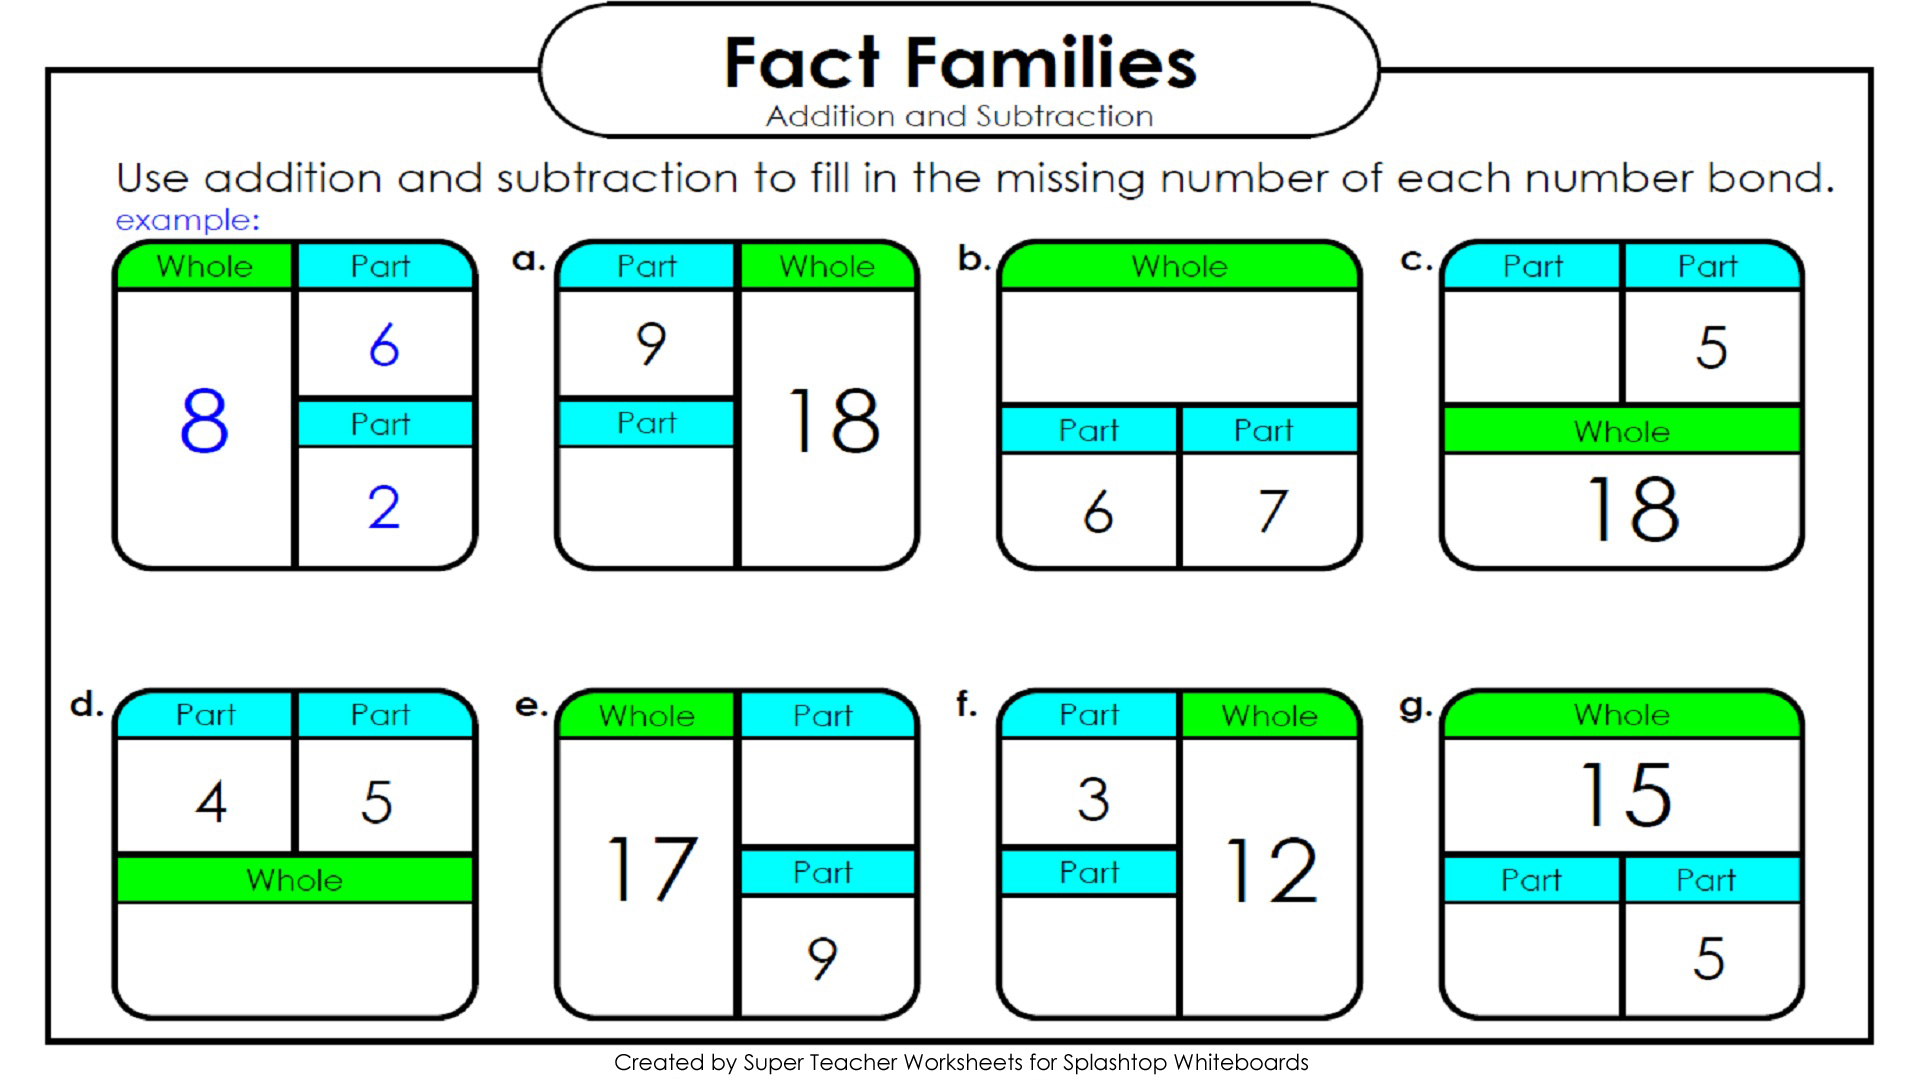 Fact Family Worksheets 3Rd Grade – Math Fact Family Worksheets